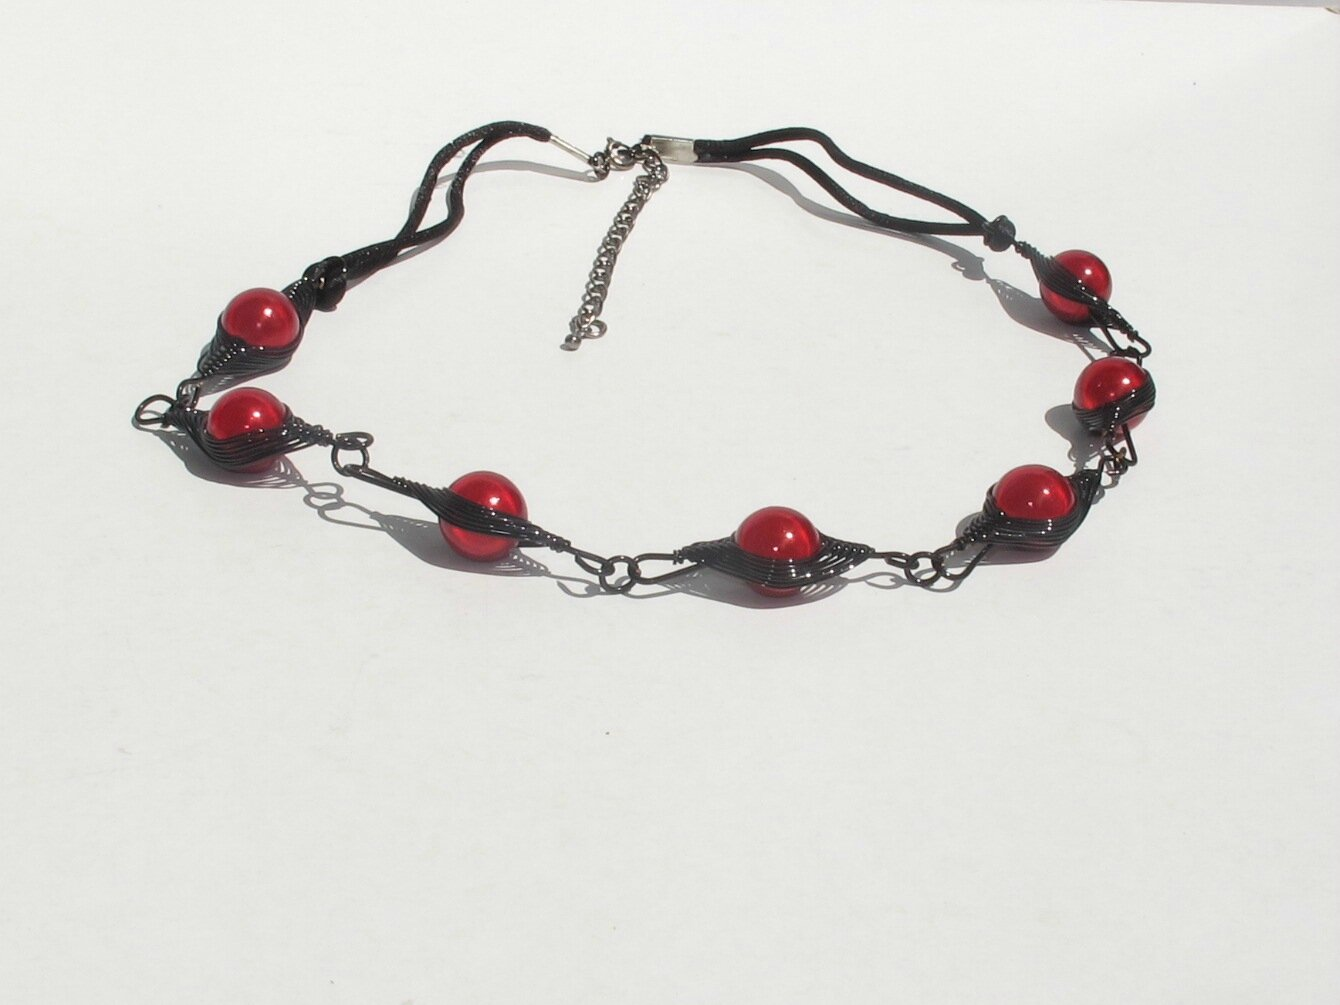 collier wire noir perles rouge bis